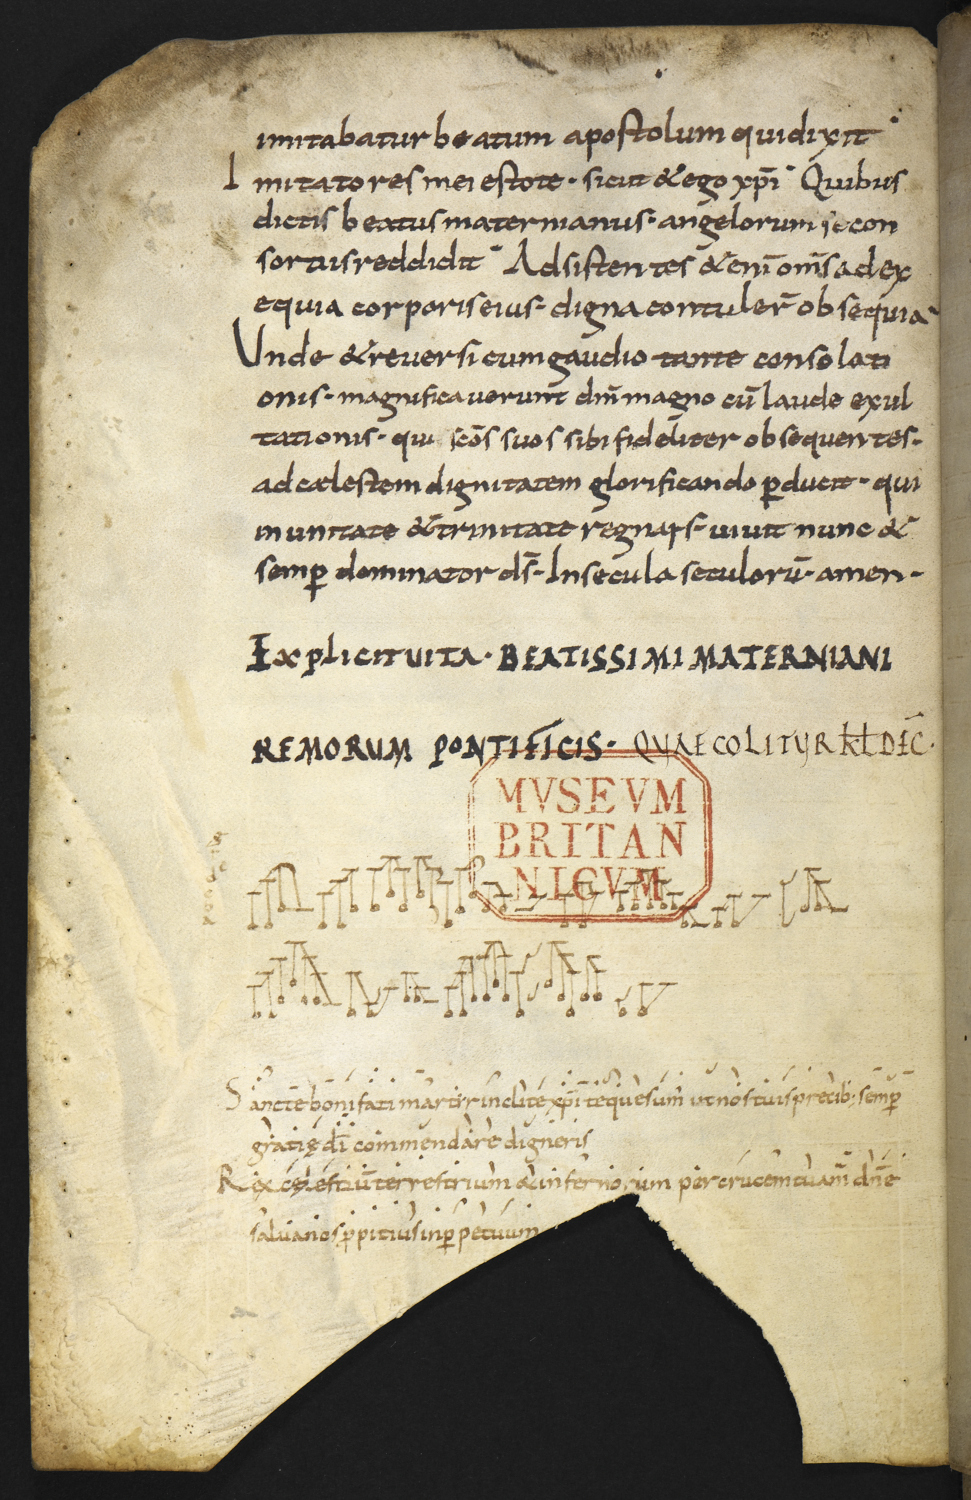 a history of the development of modern music the invention of notation Guido of arezzo was a monk who lived during the middle ages, and may be considered as one of the most influential figures in the history of modern music.